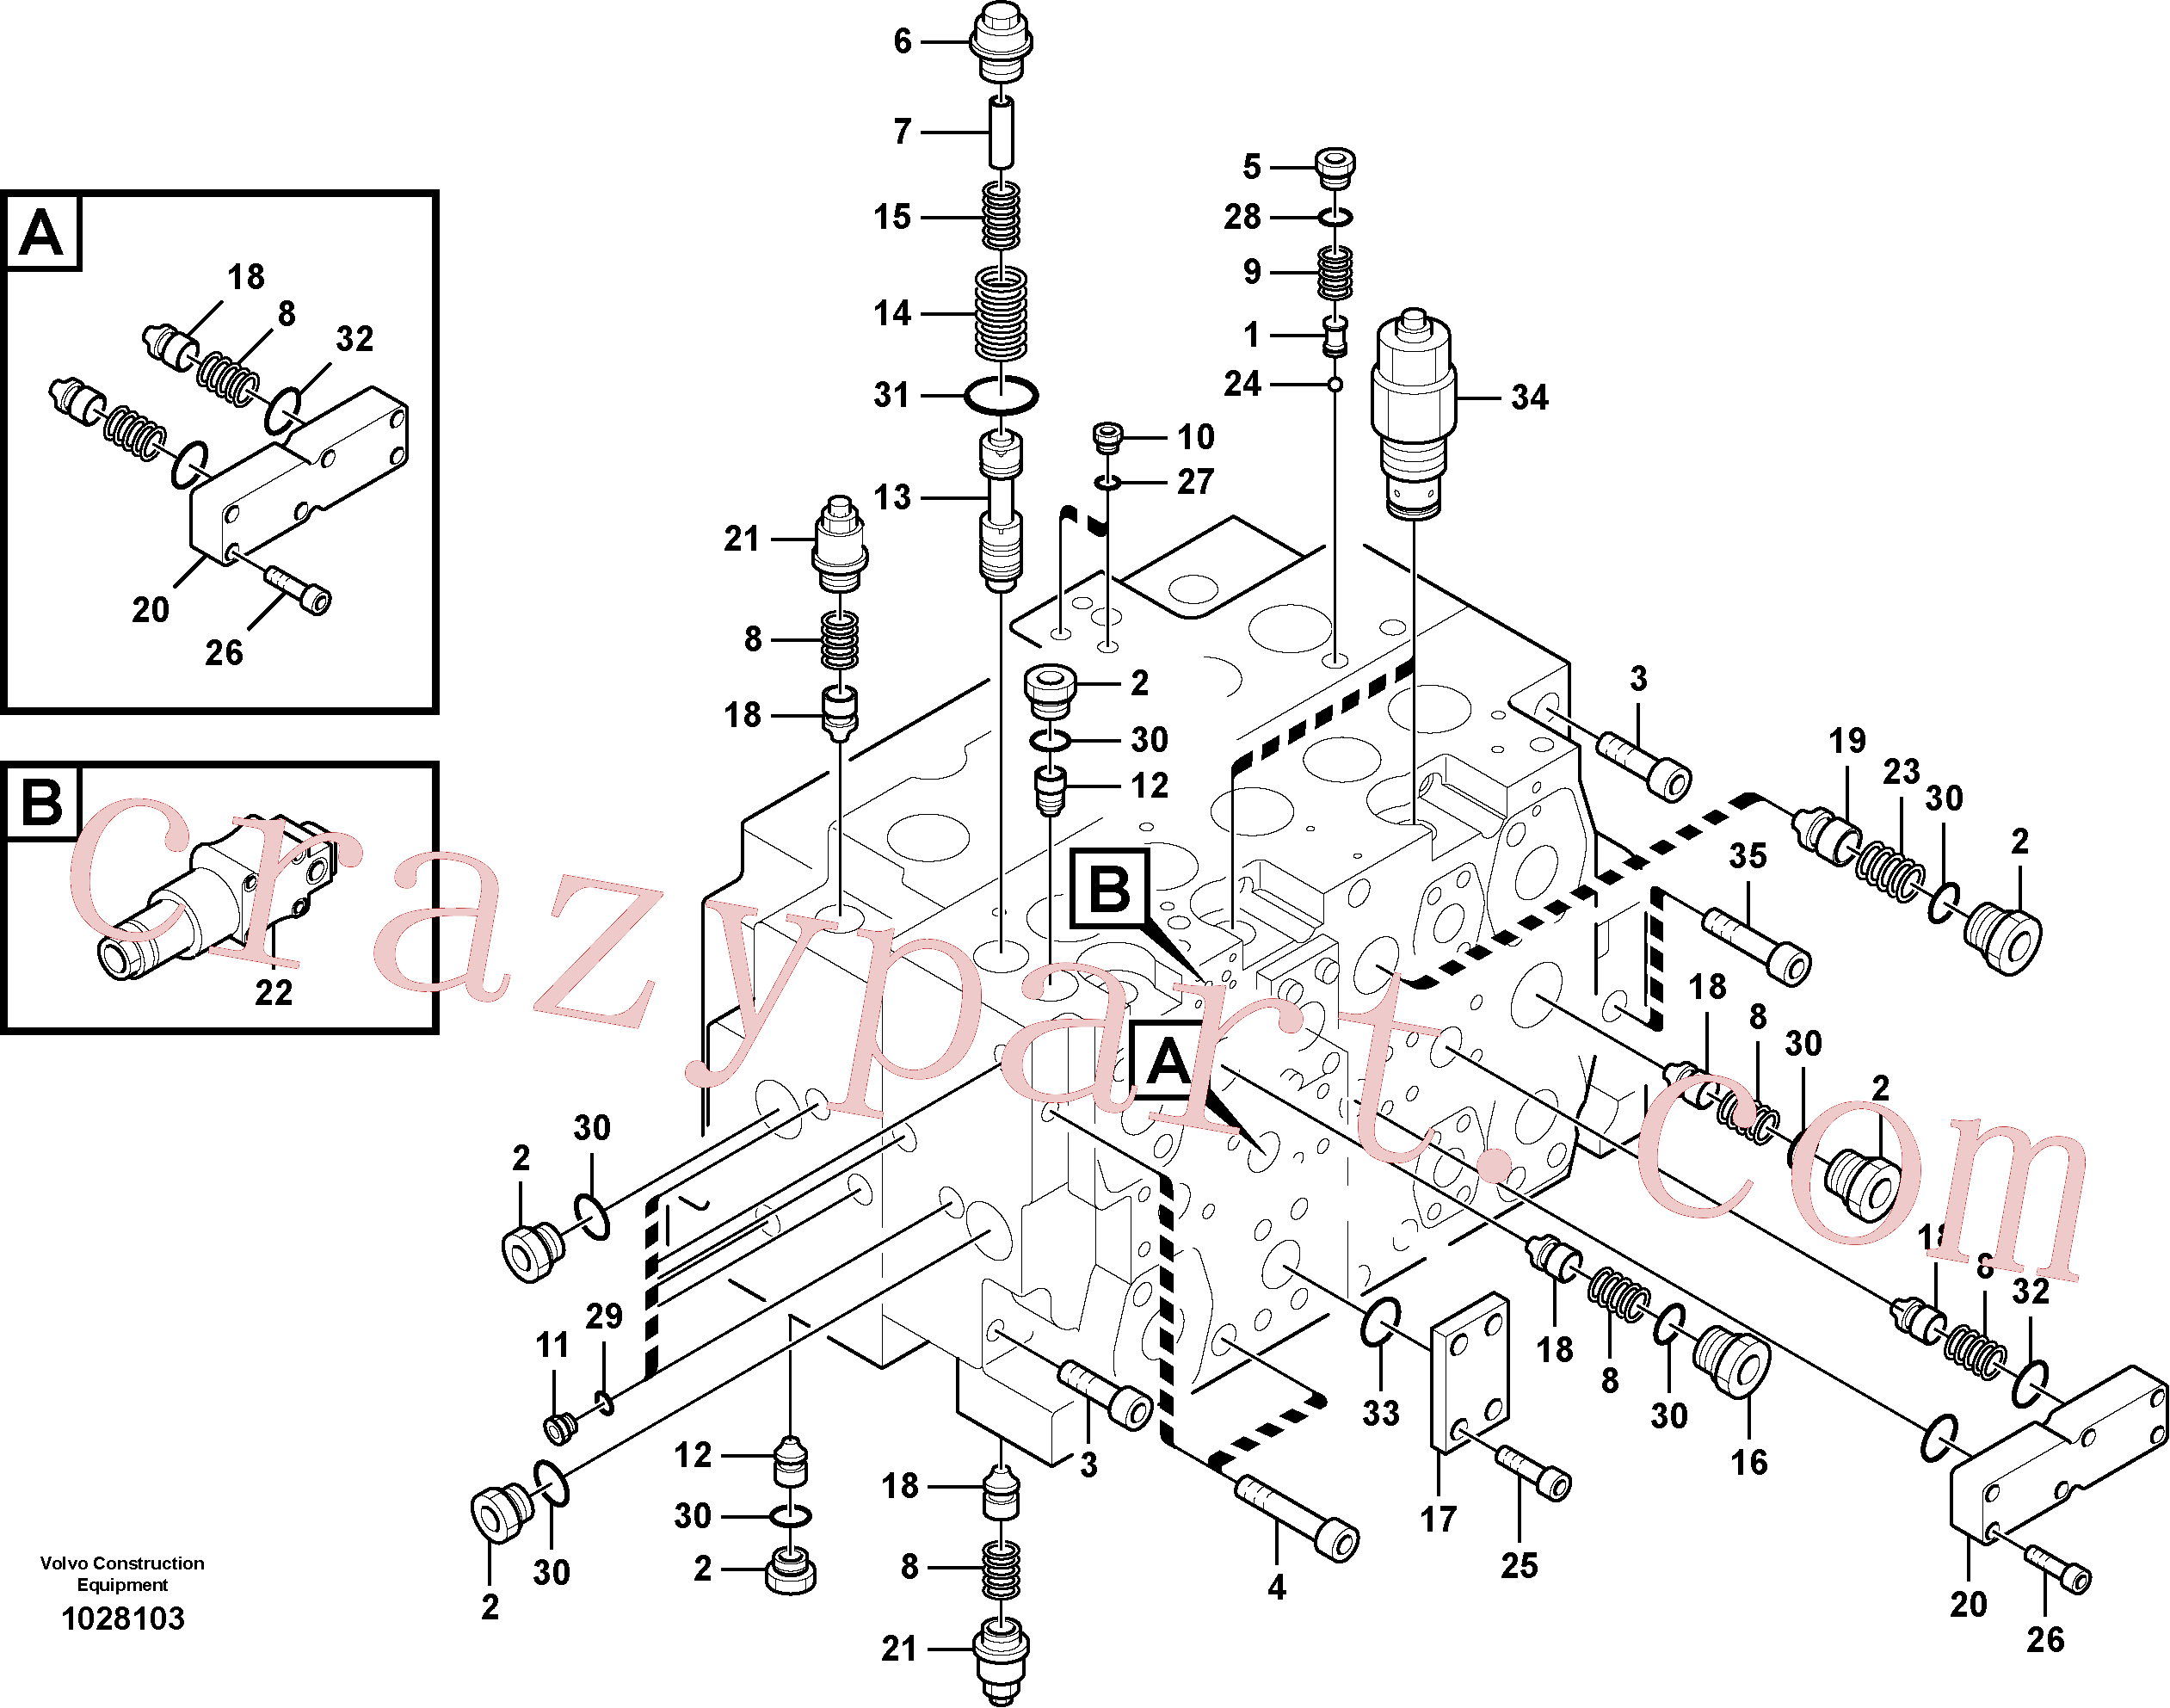 SA8230-36410 for Volvo Main control valve, Main control valve, relief valve and dipper arm holding(1028103 assembly)